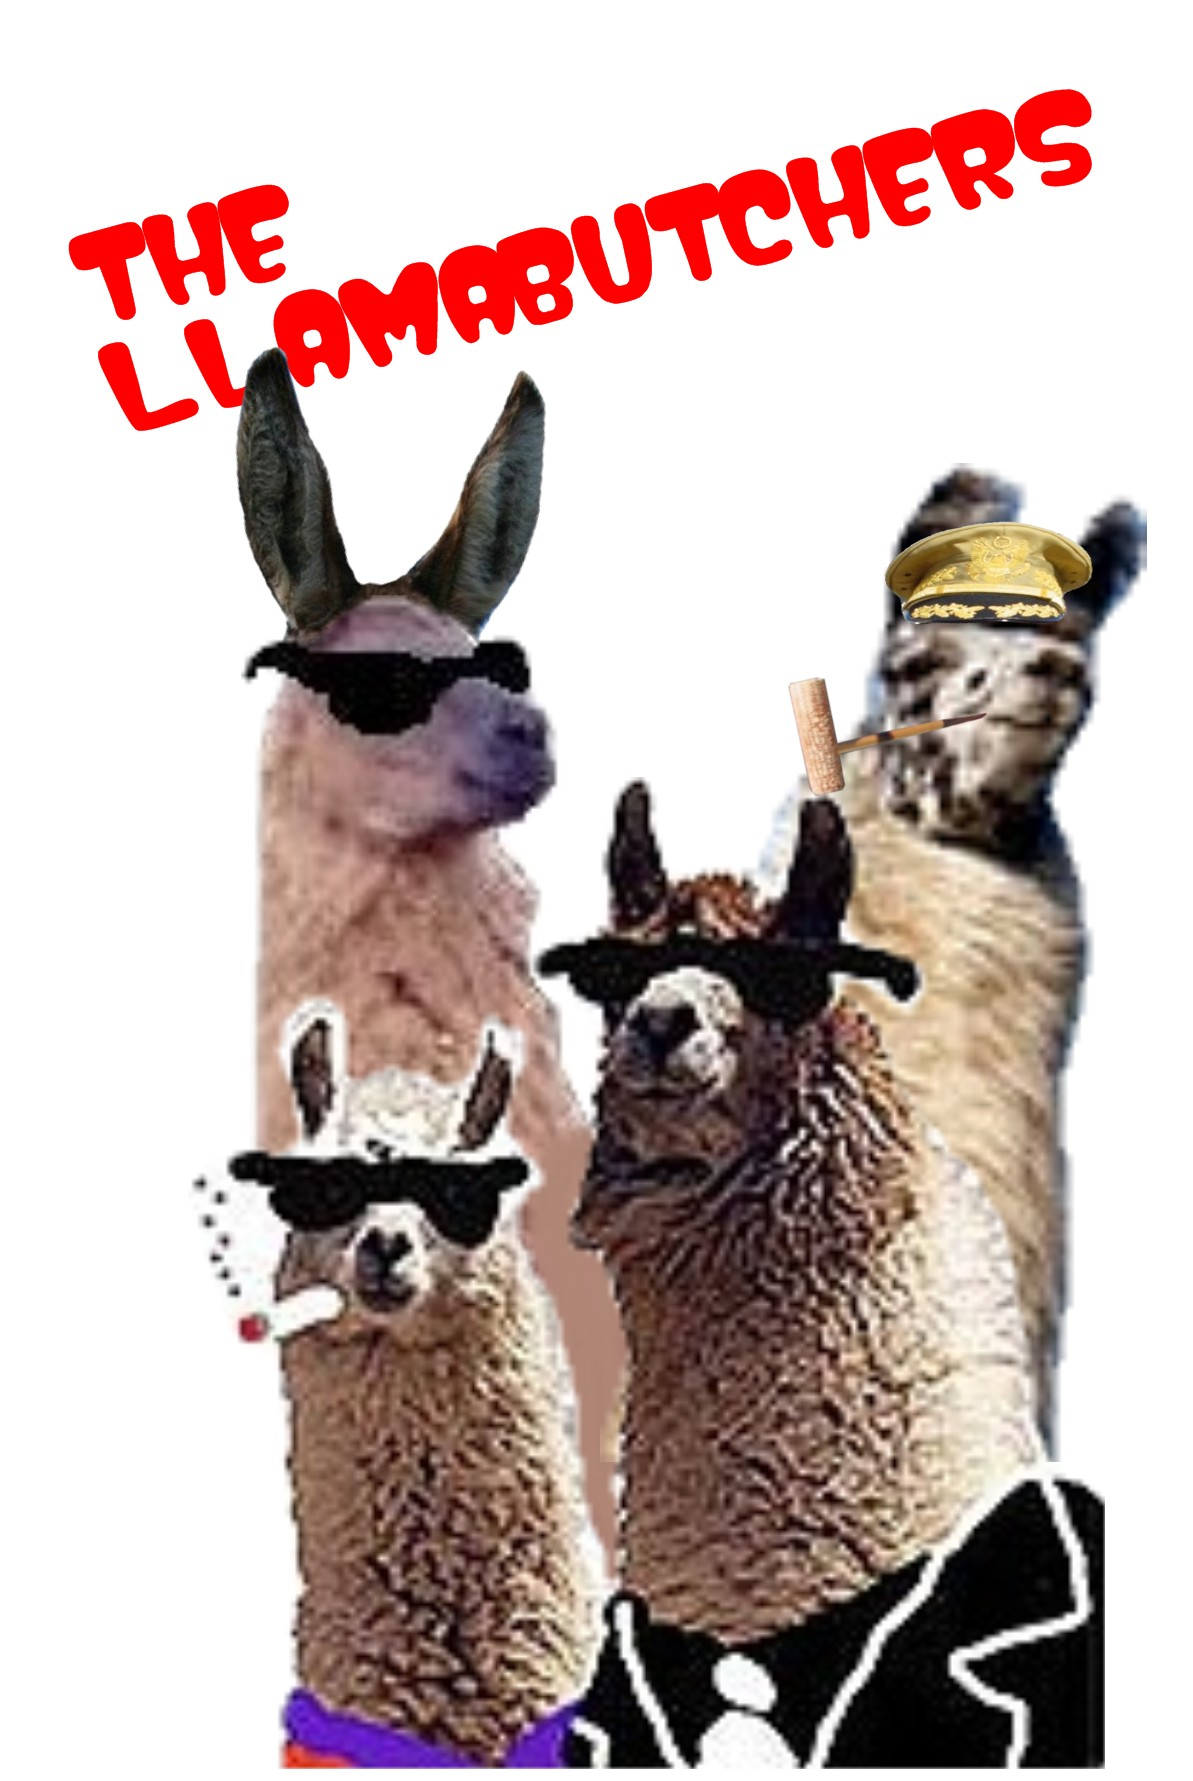 LlamaFour.jpg